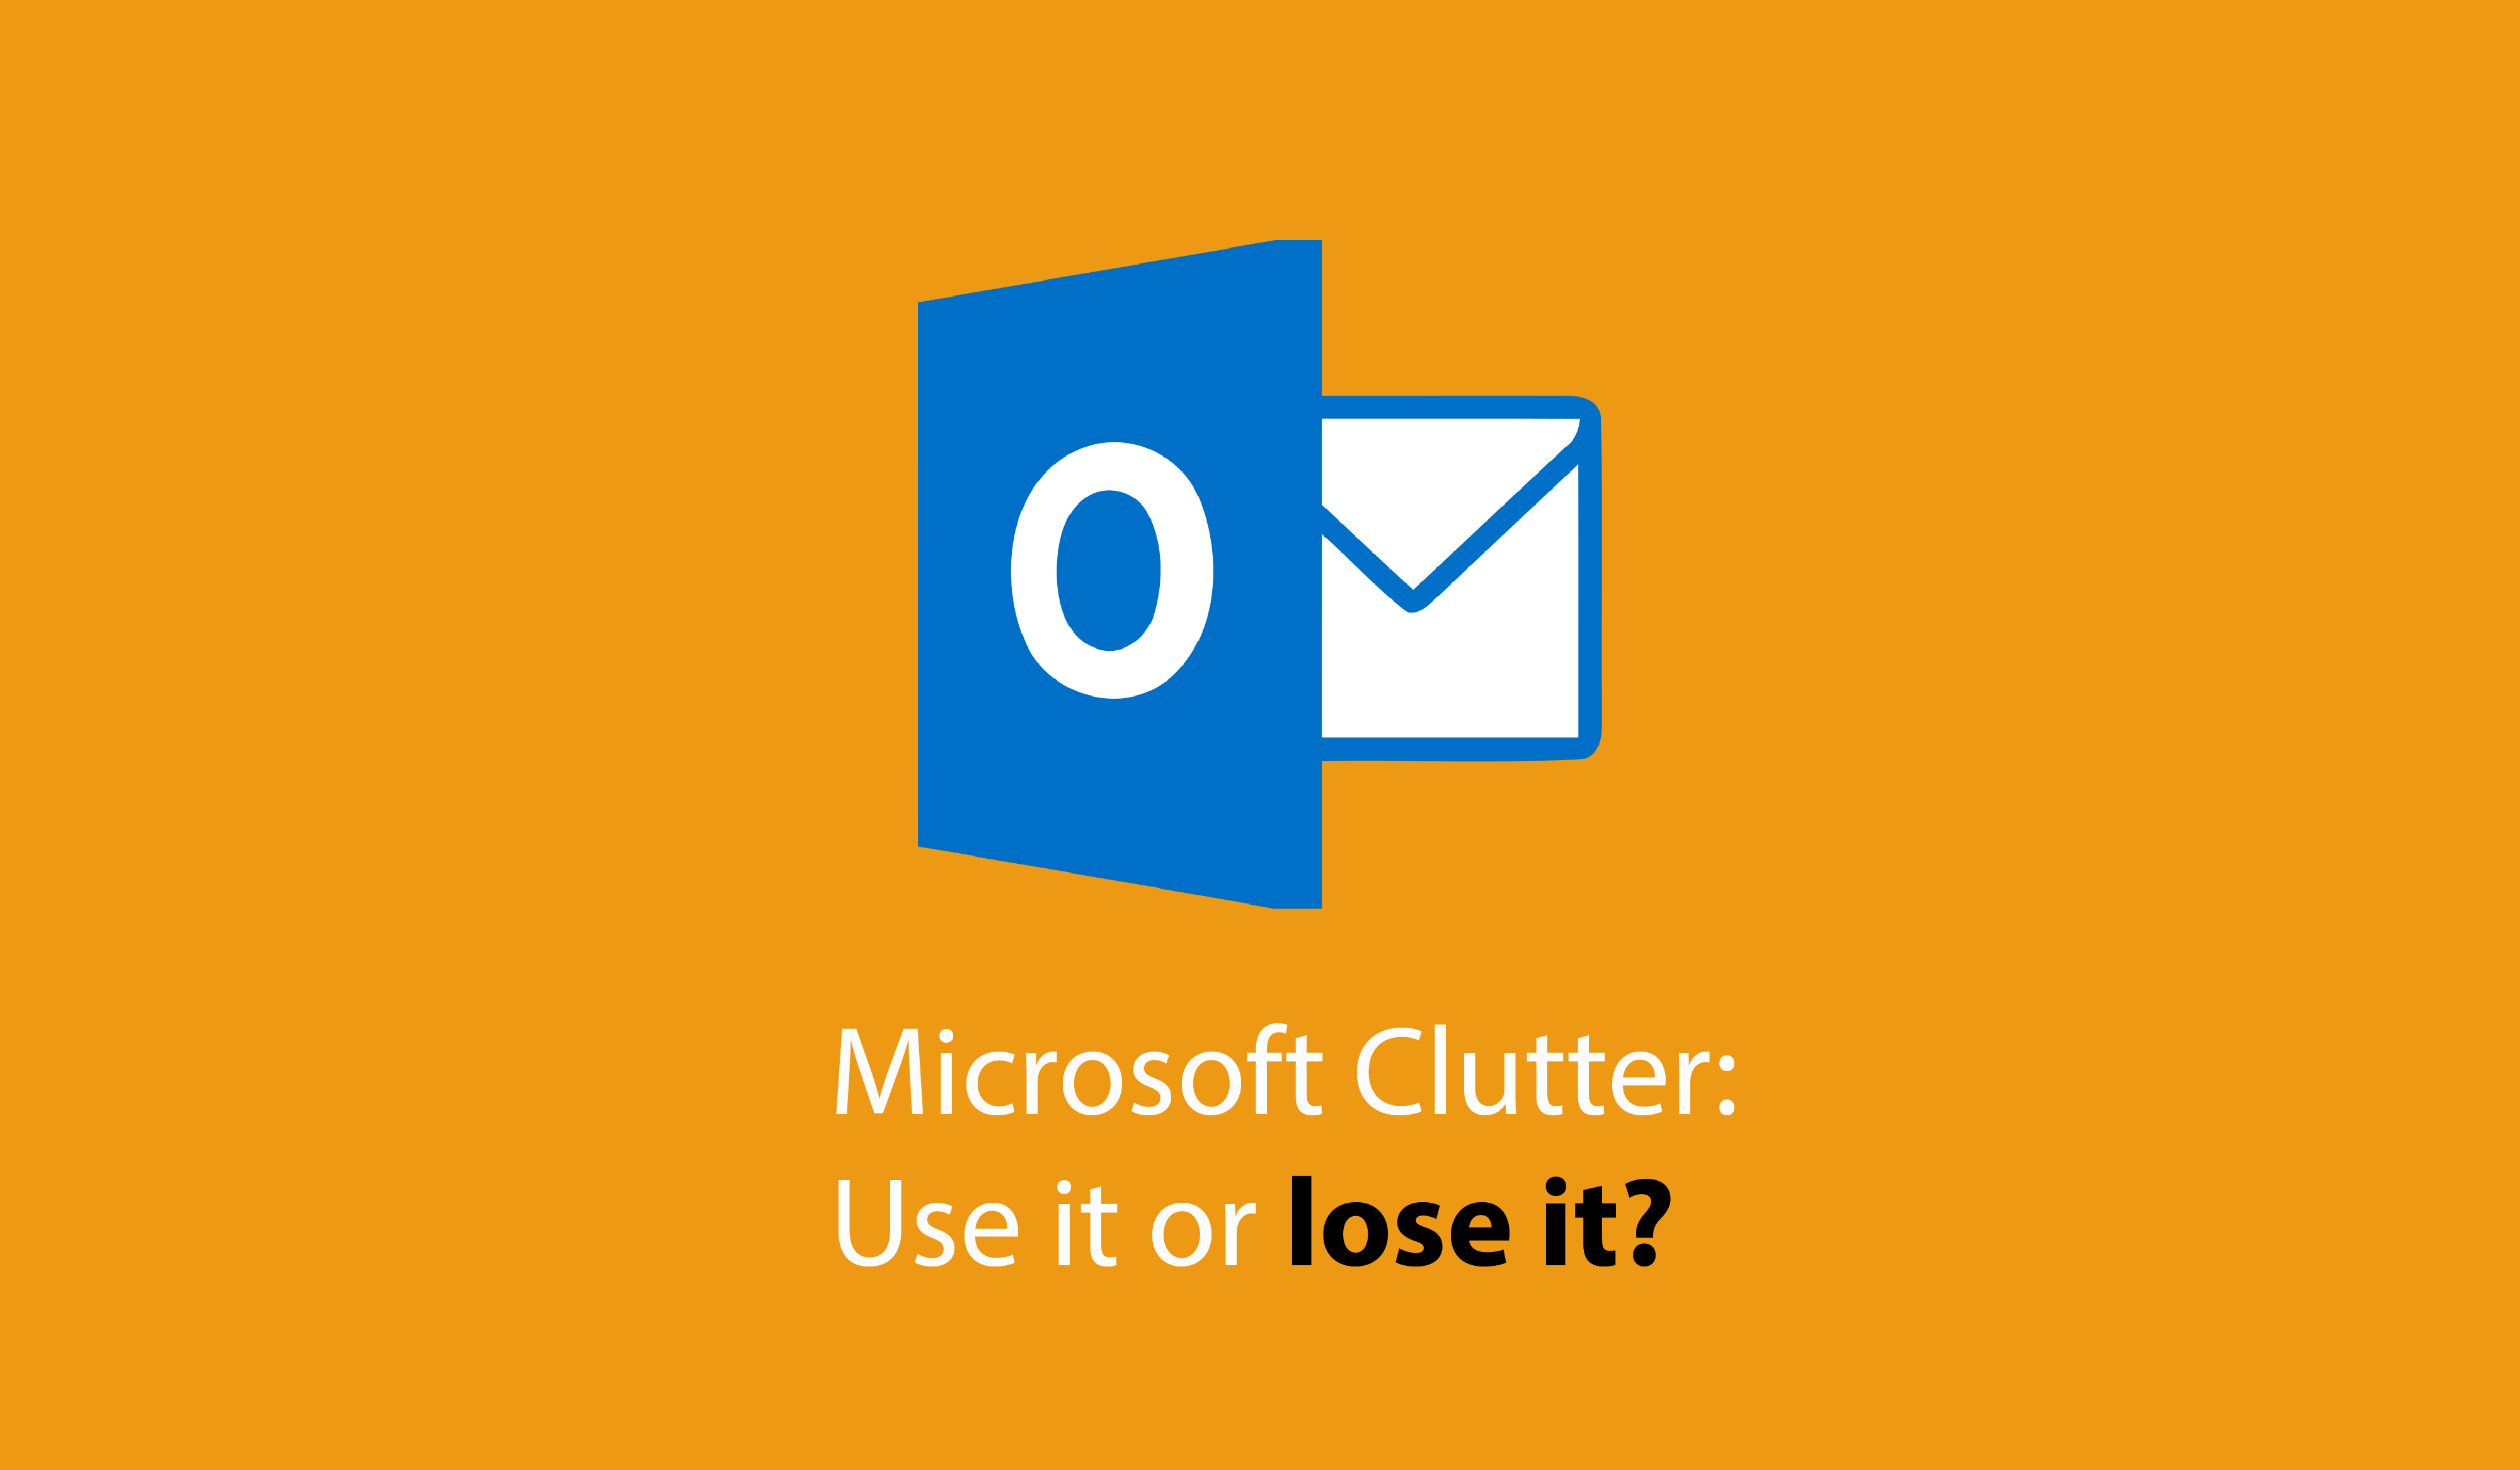 Microsoft Clutter: Use it or lose it?